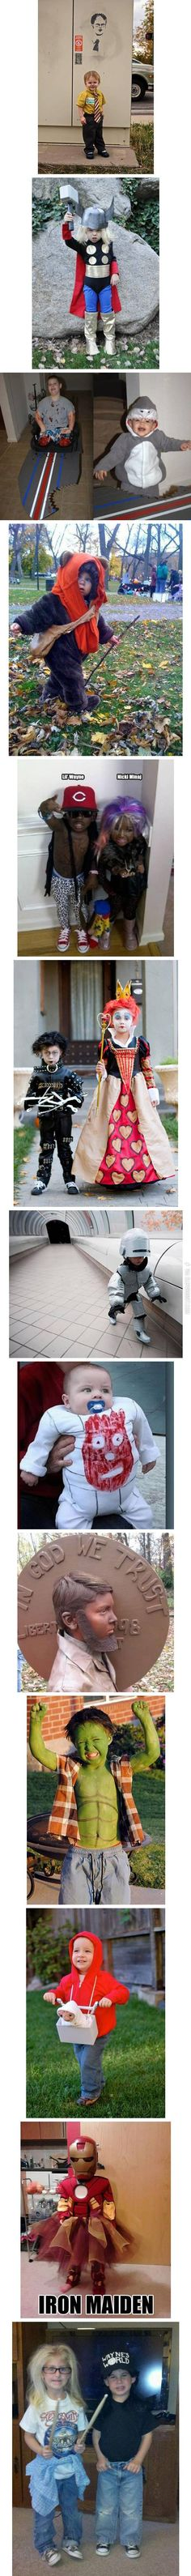 Awesome costumes are awesome. Those kids are going somewhere!! haha